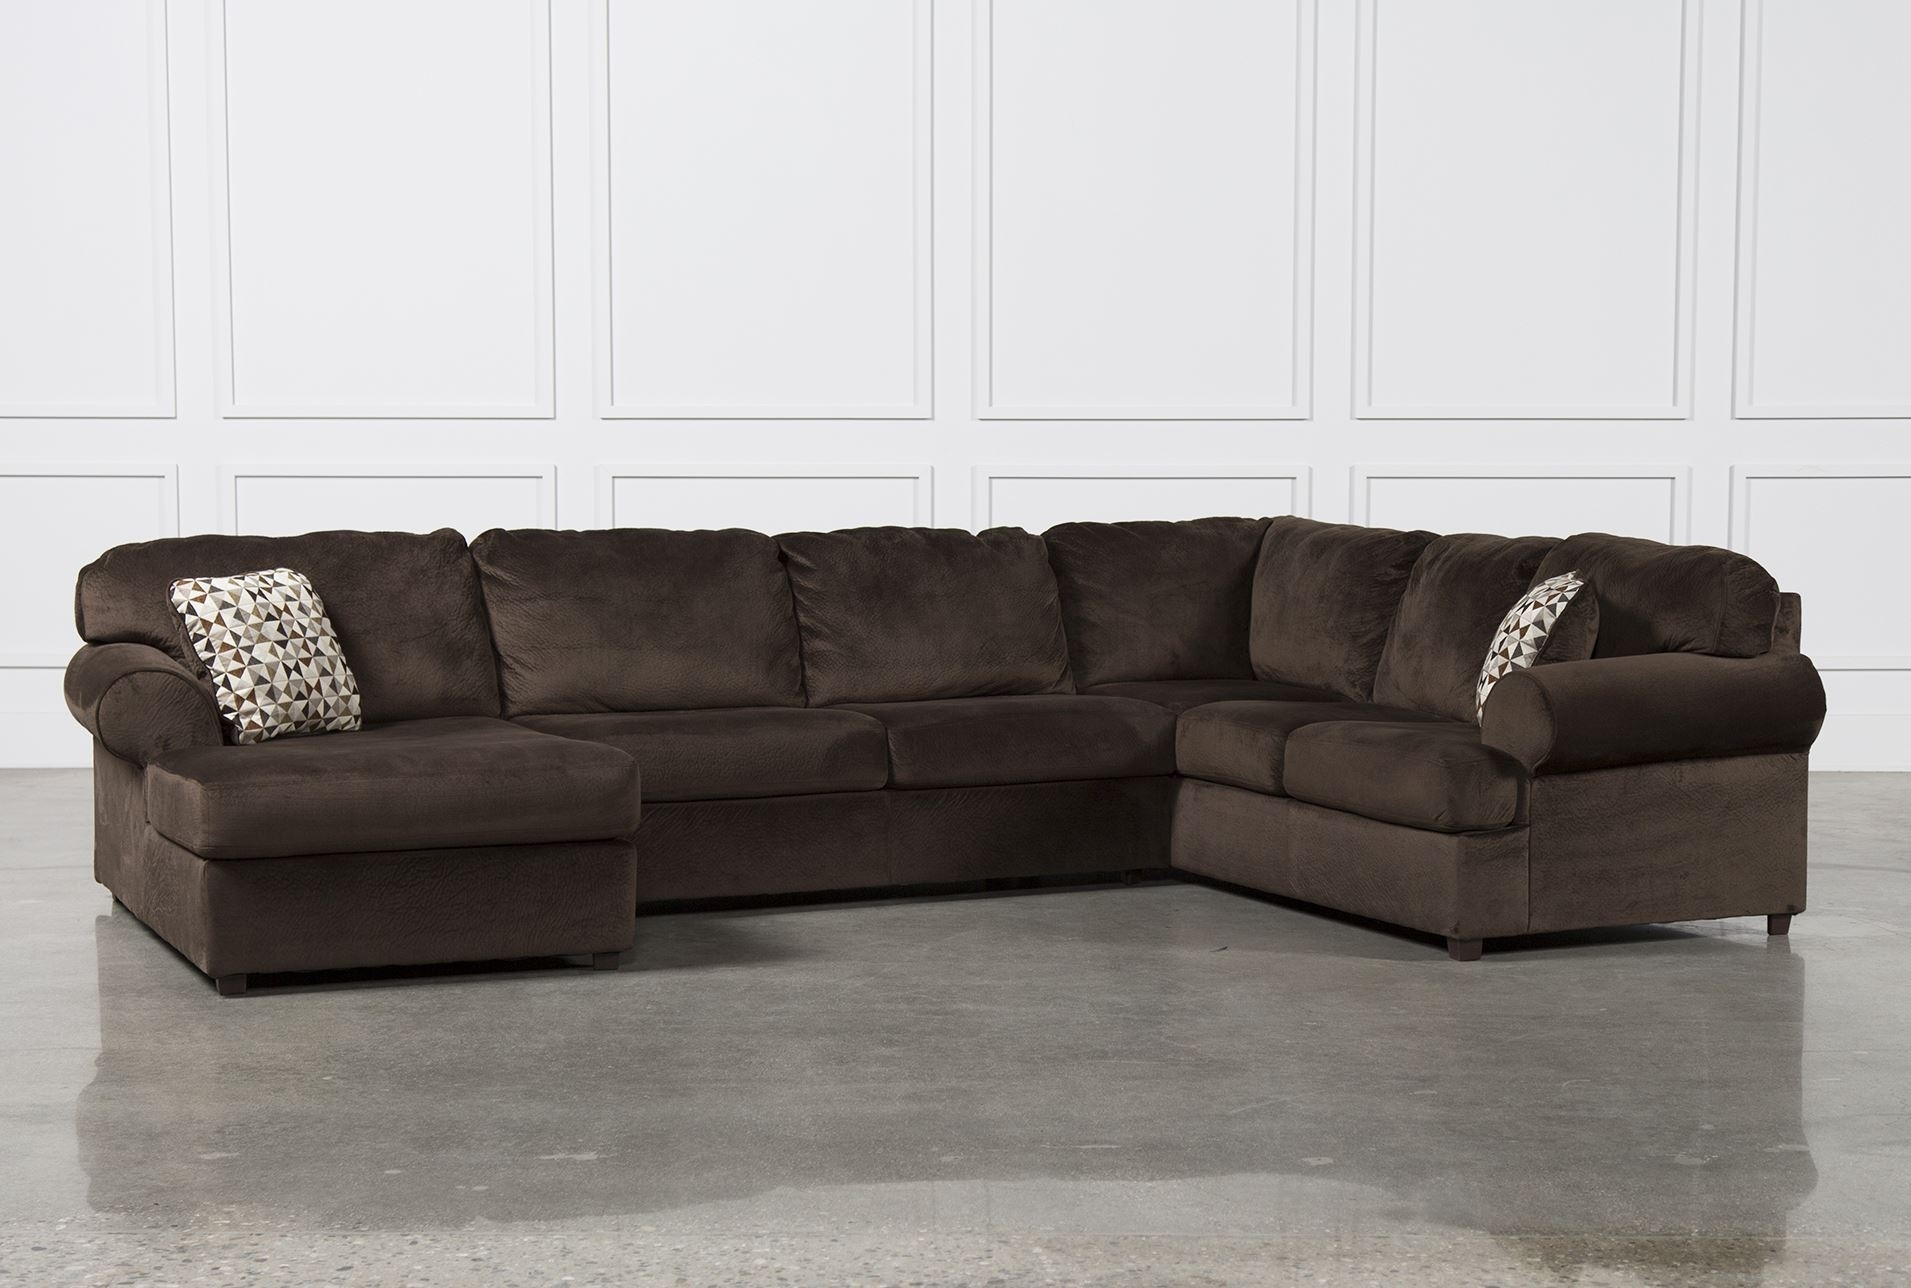 3 Piece Leather Sectional Sofa With Chaise – Cleanupflorida Regarding Gordon 3 Piece Sectionals With Raf Chaise (Image 2 of 25)